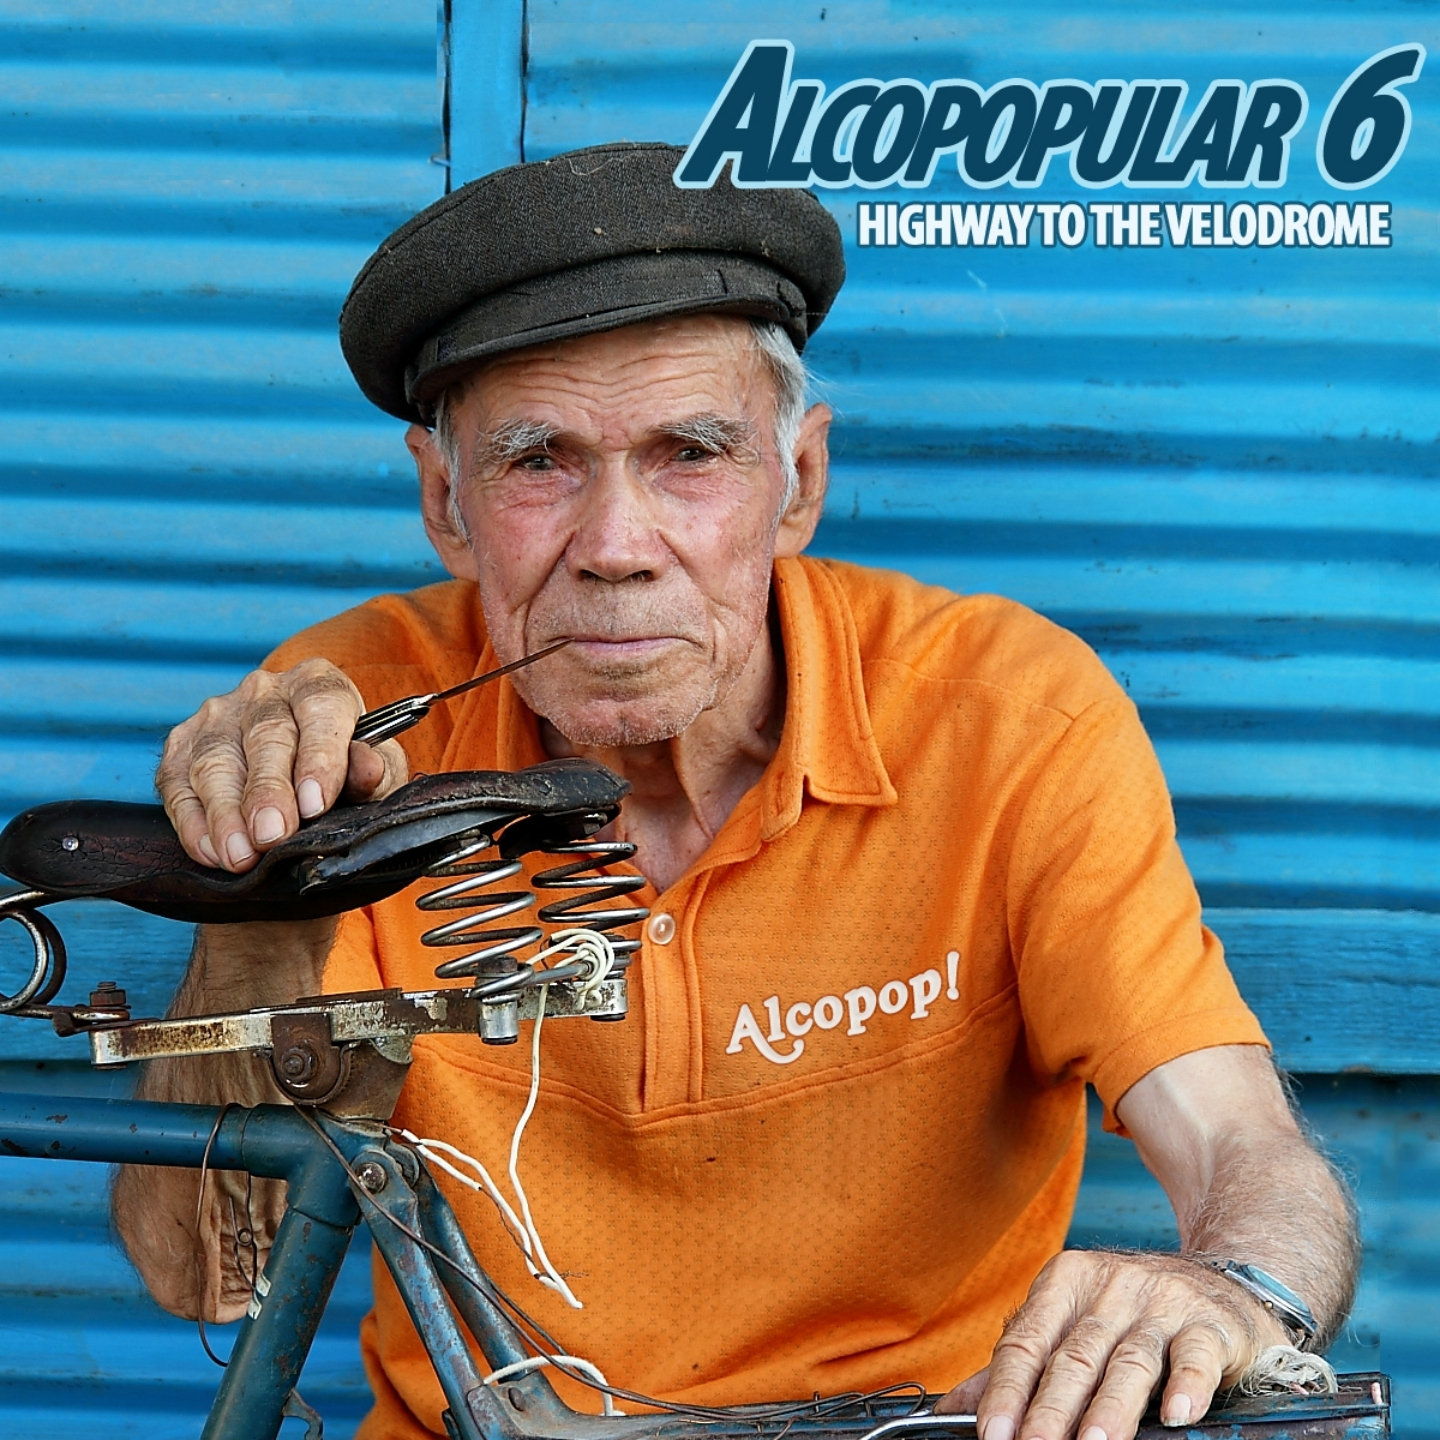 Alcopopular 6: Highway to the Velodrome